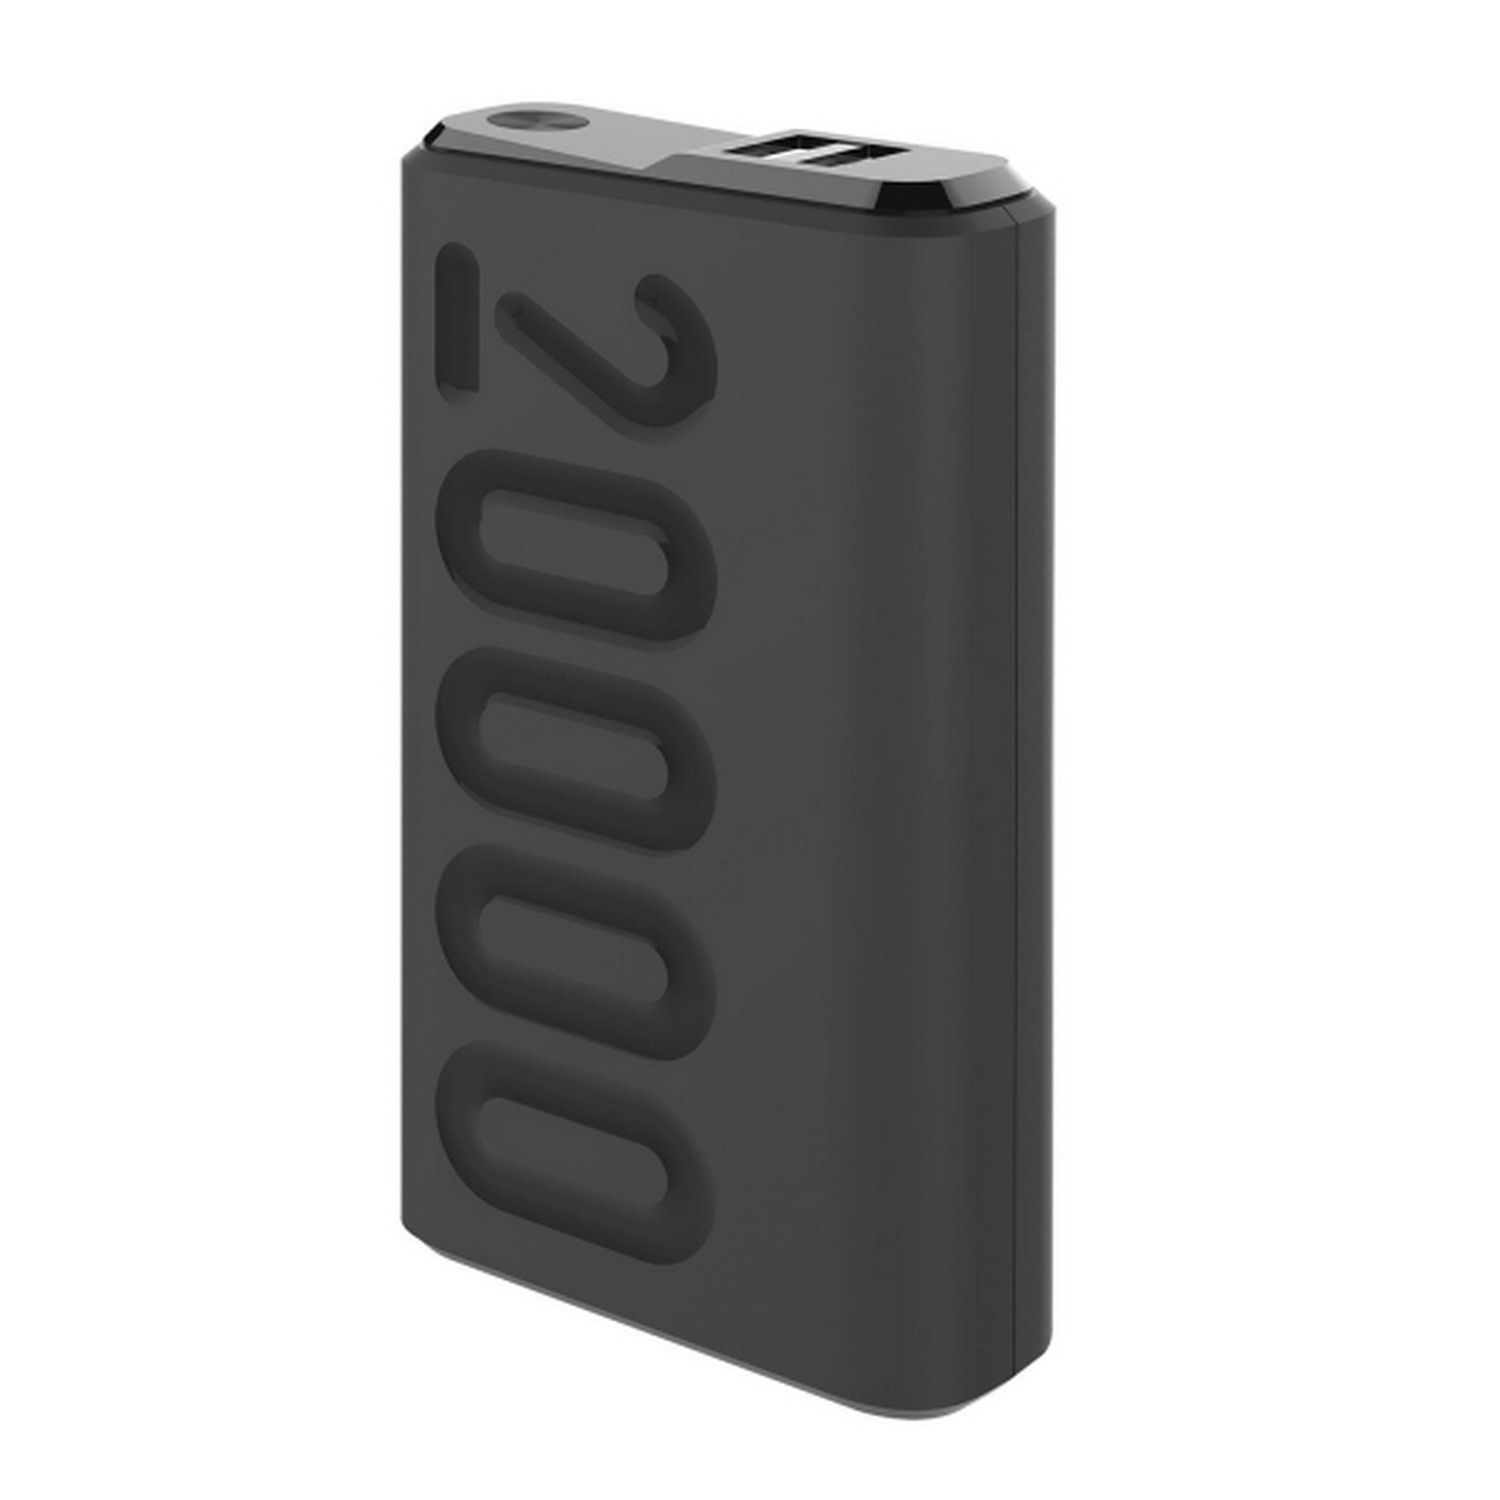 Celly Powerbank QuickCharge 20.000mAh PBPD18W20000BK POWERBANK MIT QUICKCHARGE 18W